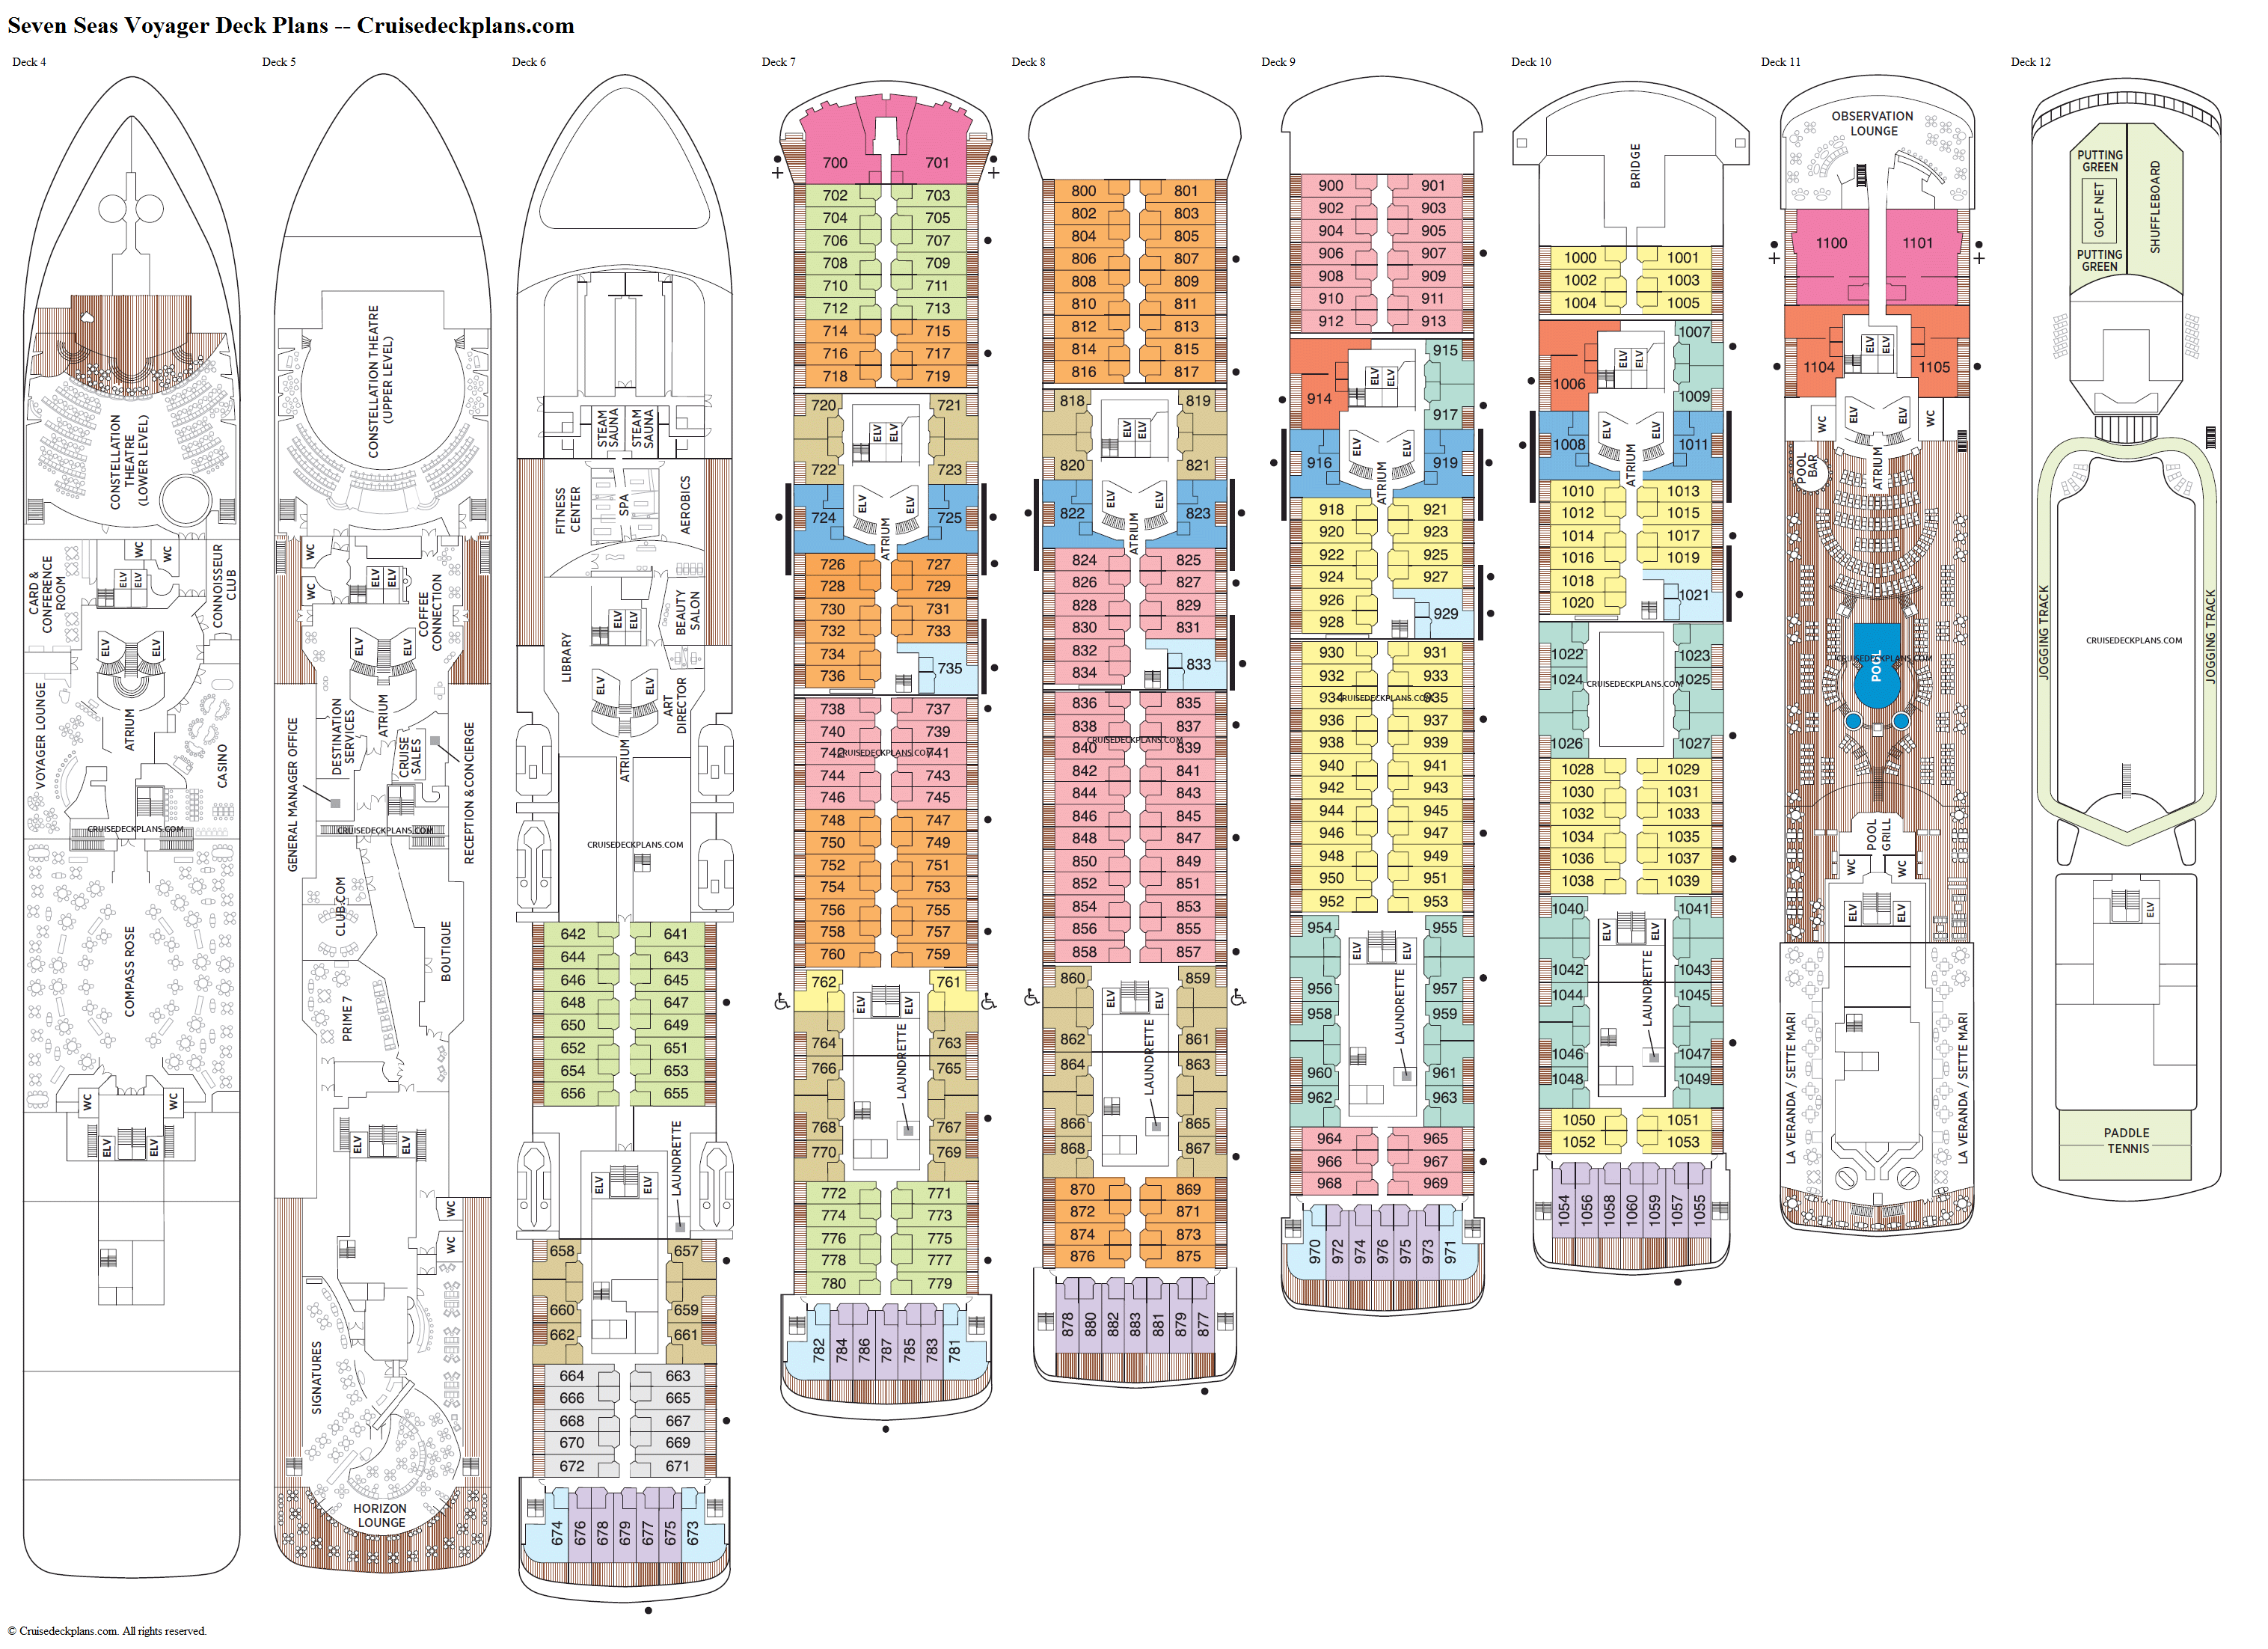 Seven Seas Voyager deck plans image